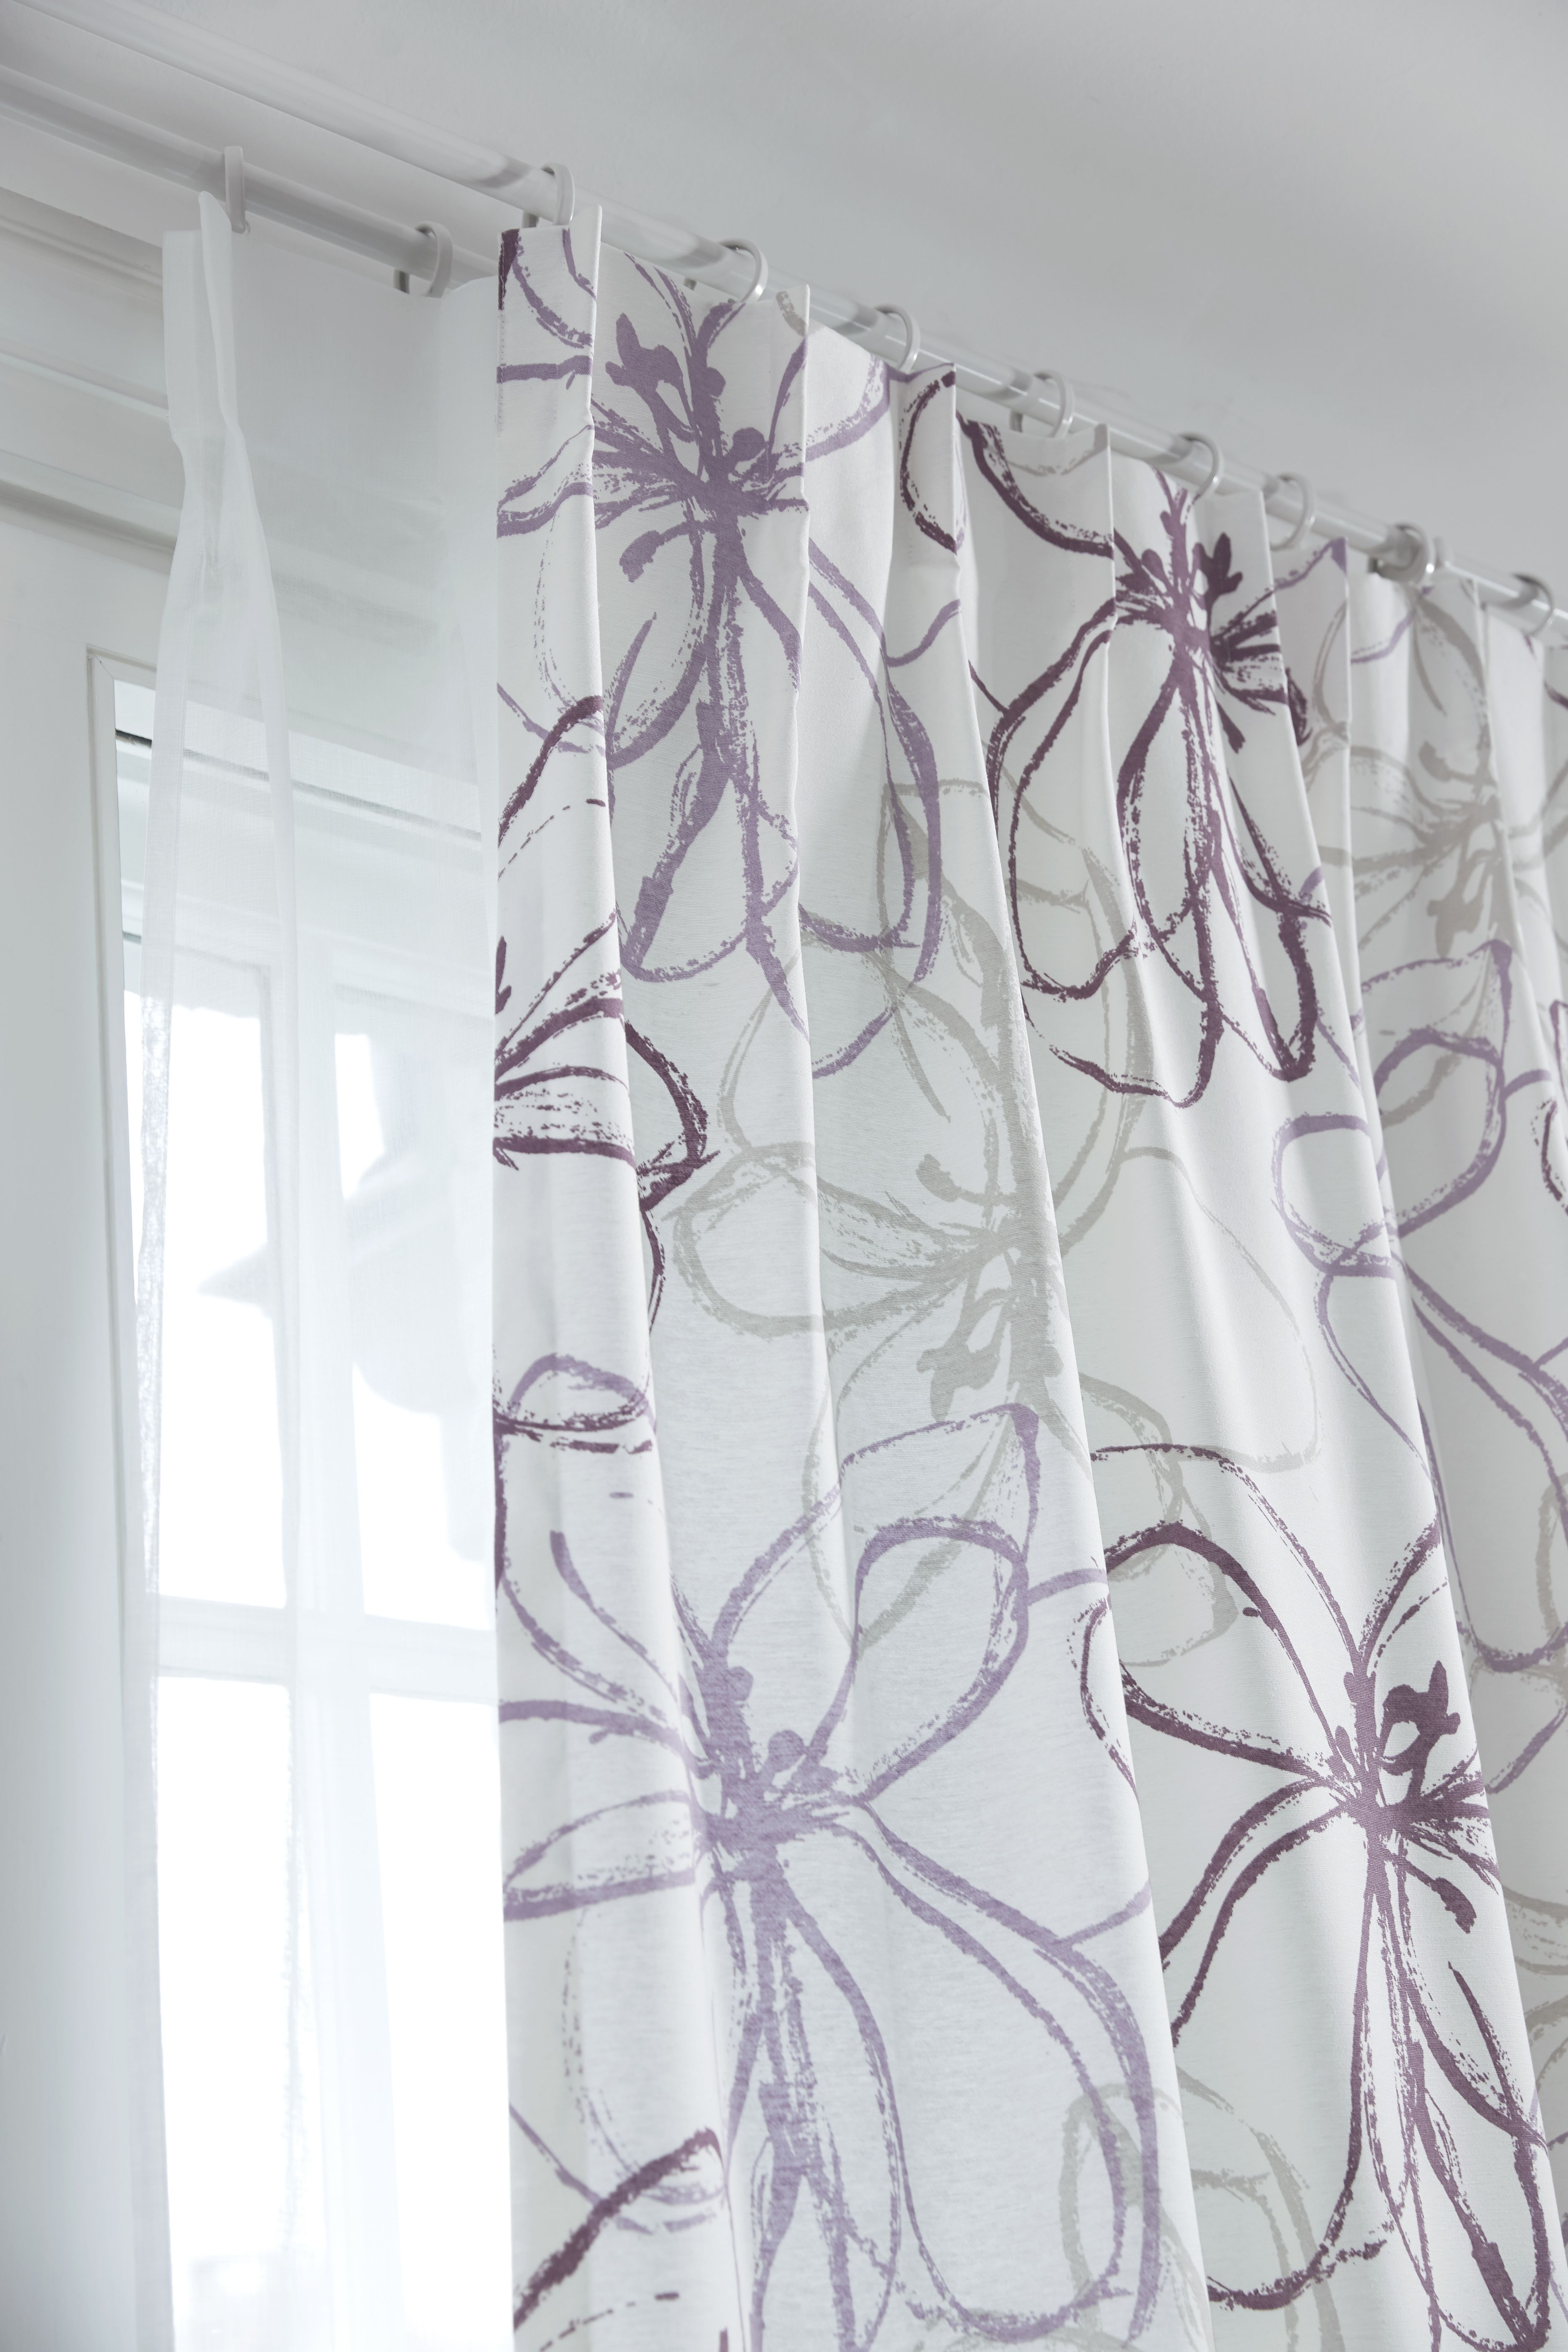 chez vous | Romantic purple | Pinterest | Drapes and blinds, Custom ...